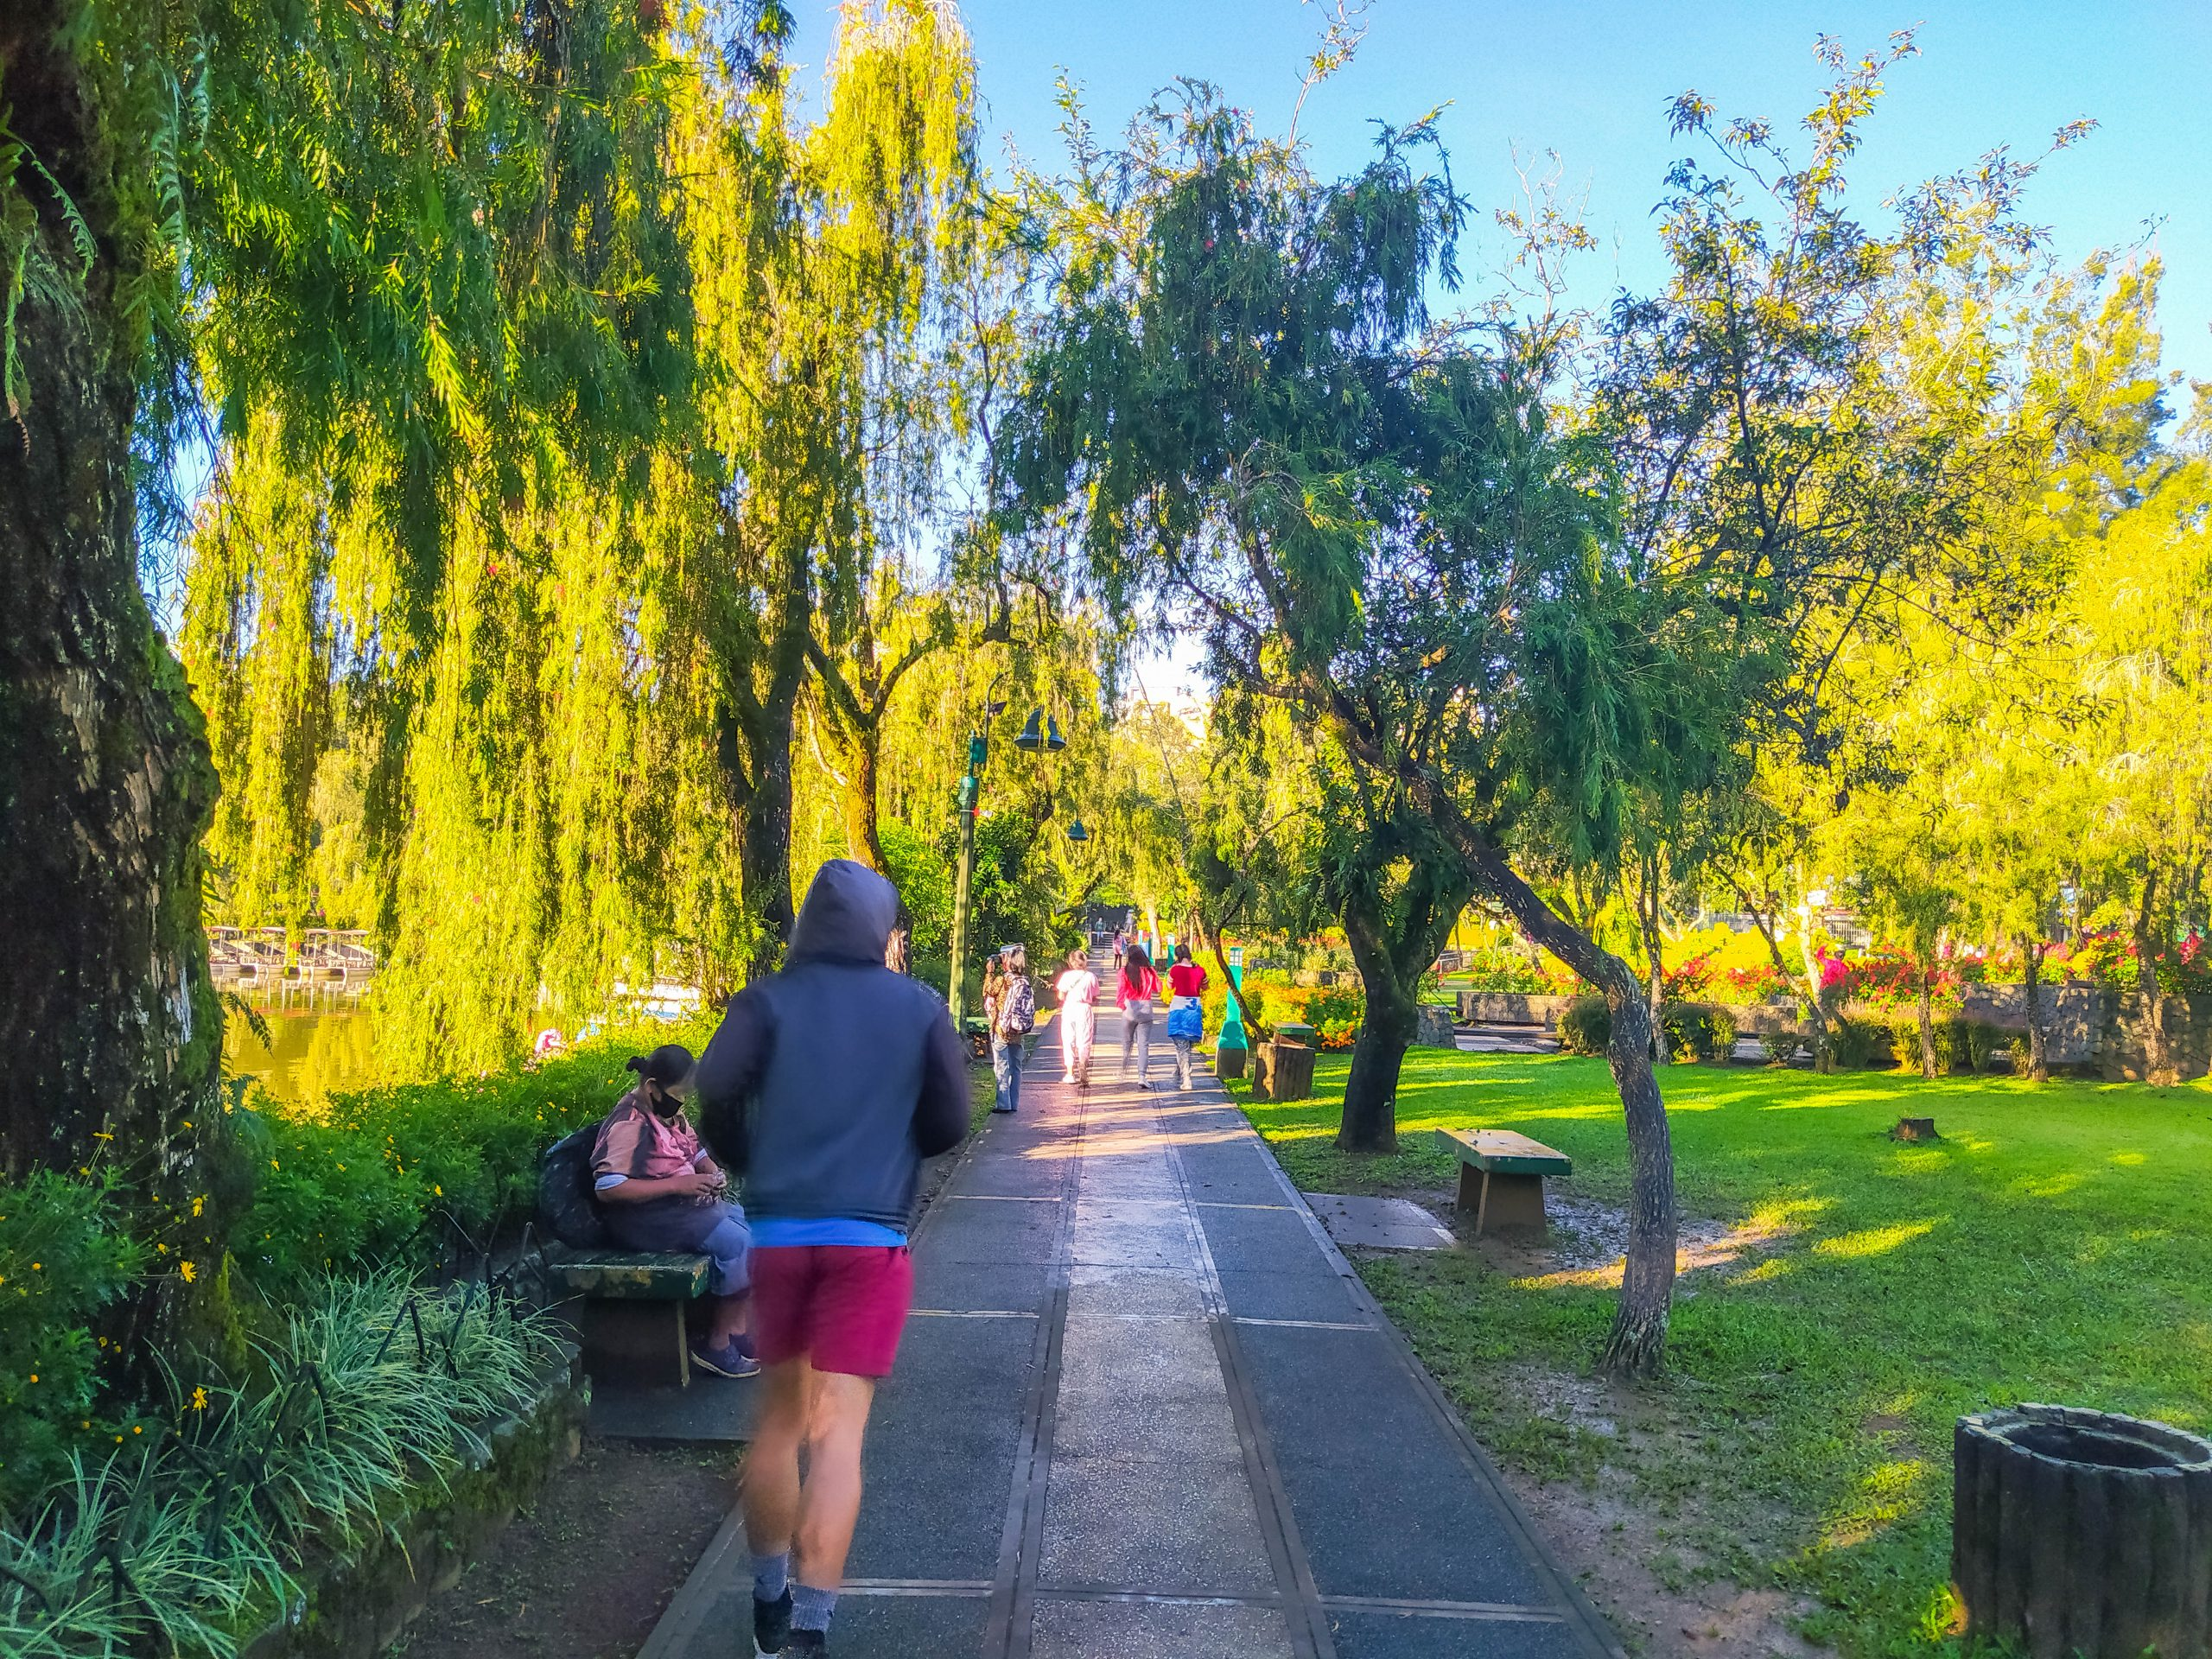 People jogging along a paved pathway lined with grass, plants, and trees